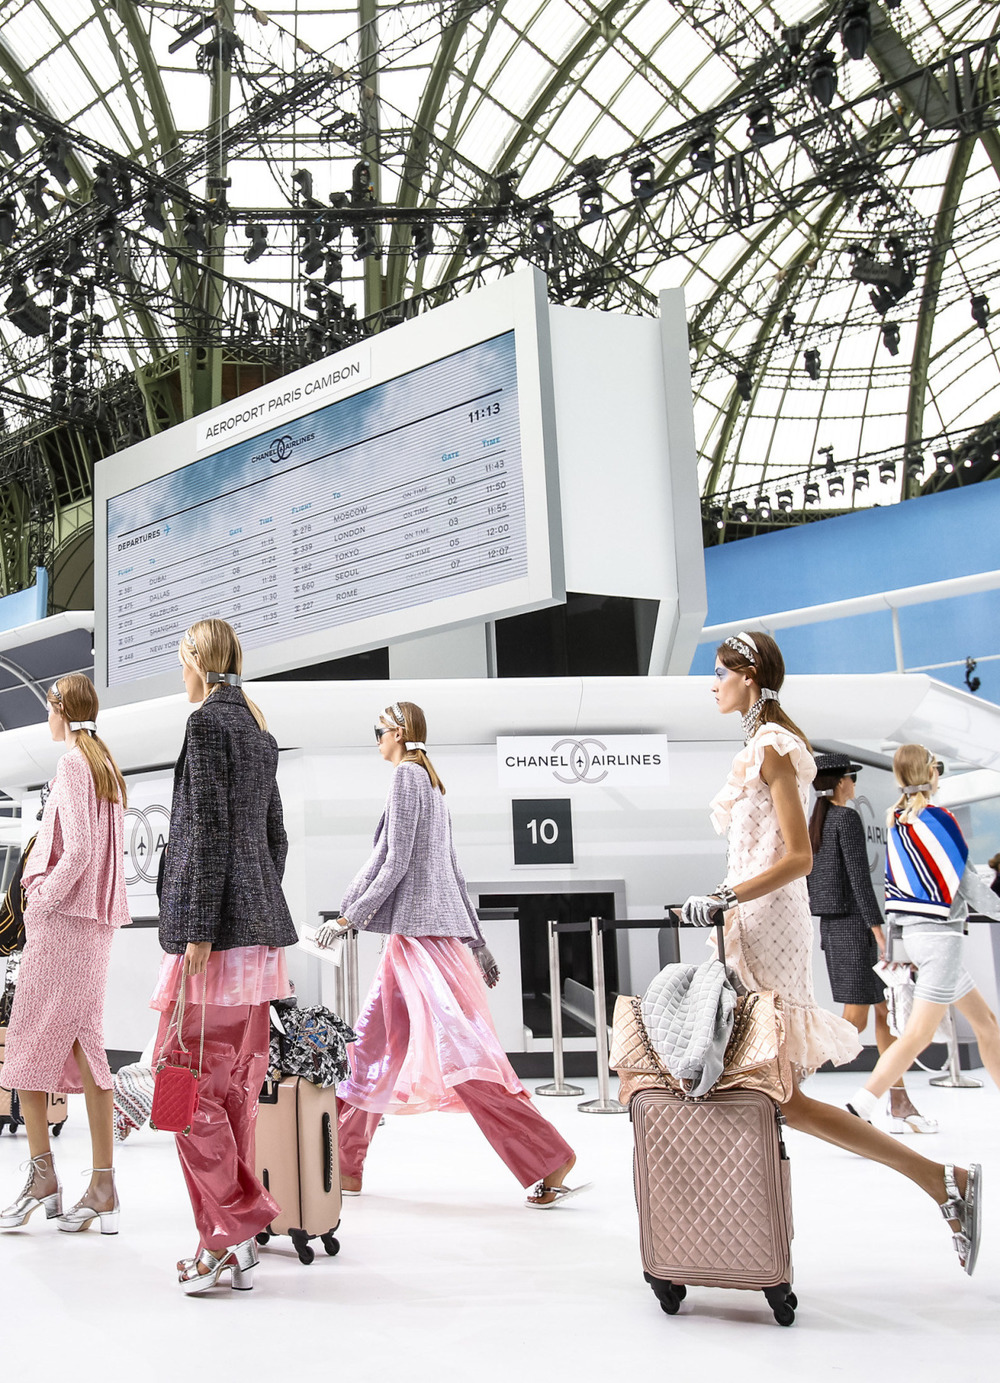 vogue: Karl Lagerfeld takes us for a ride on Chanel Airlines. Go inside Chanel's Spring 2016 runway show.